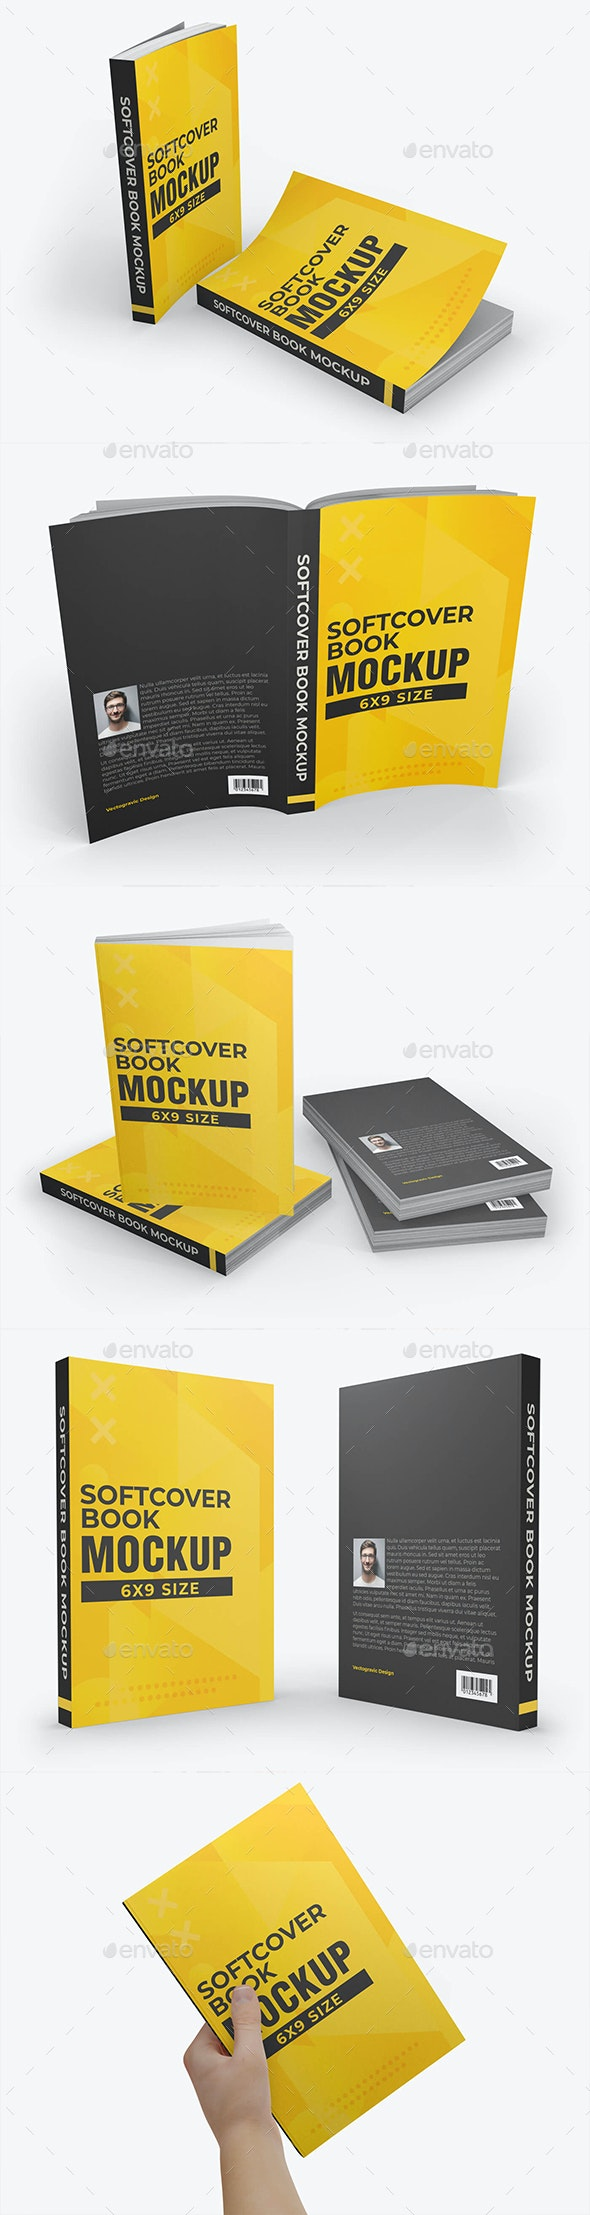 Softcover Book Mockups - Books Print